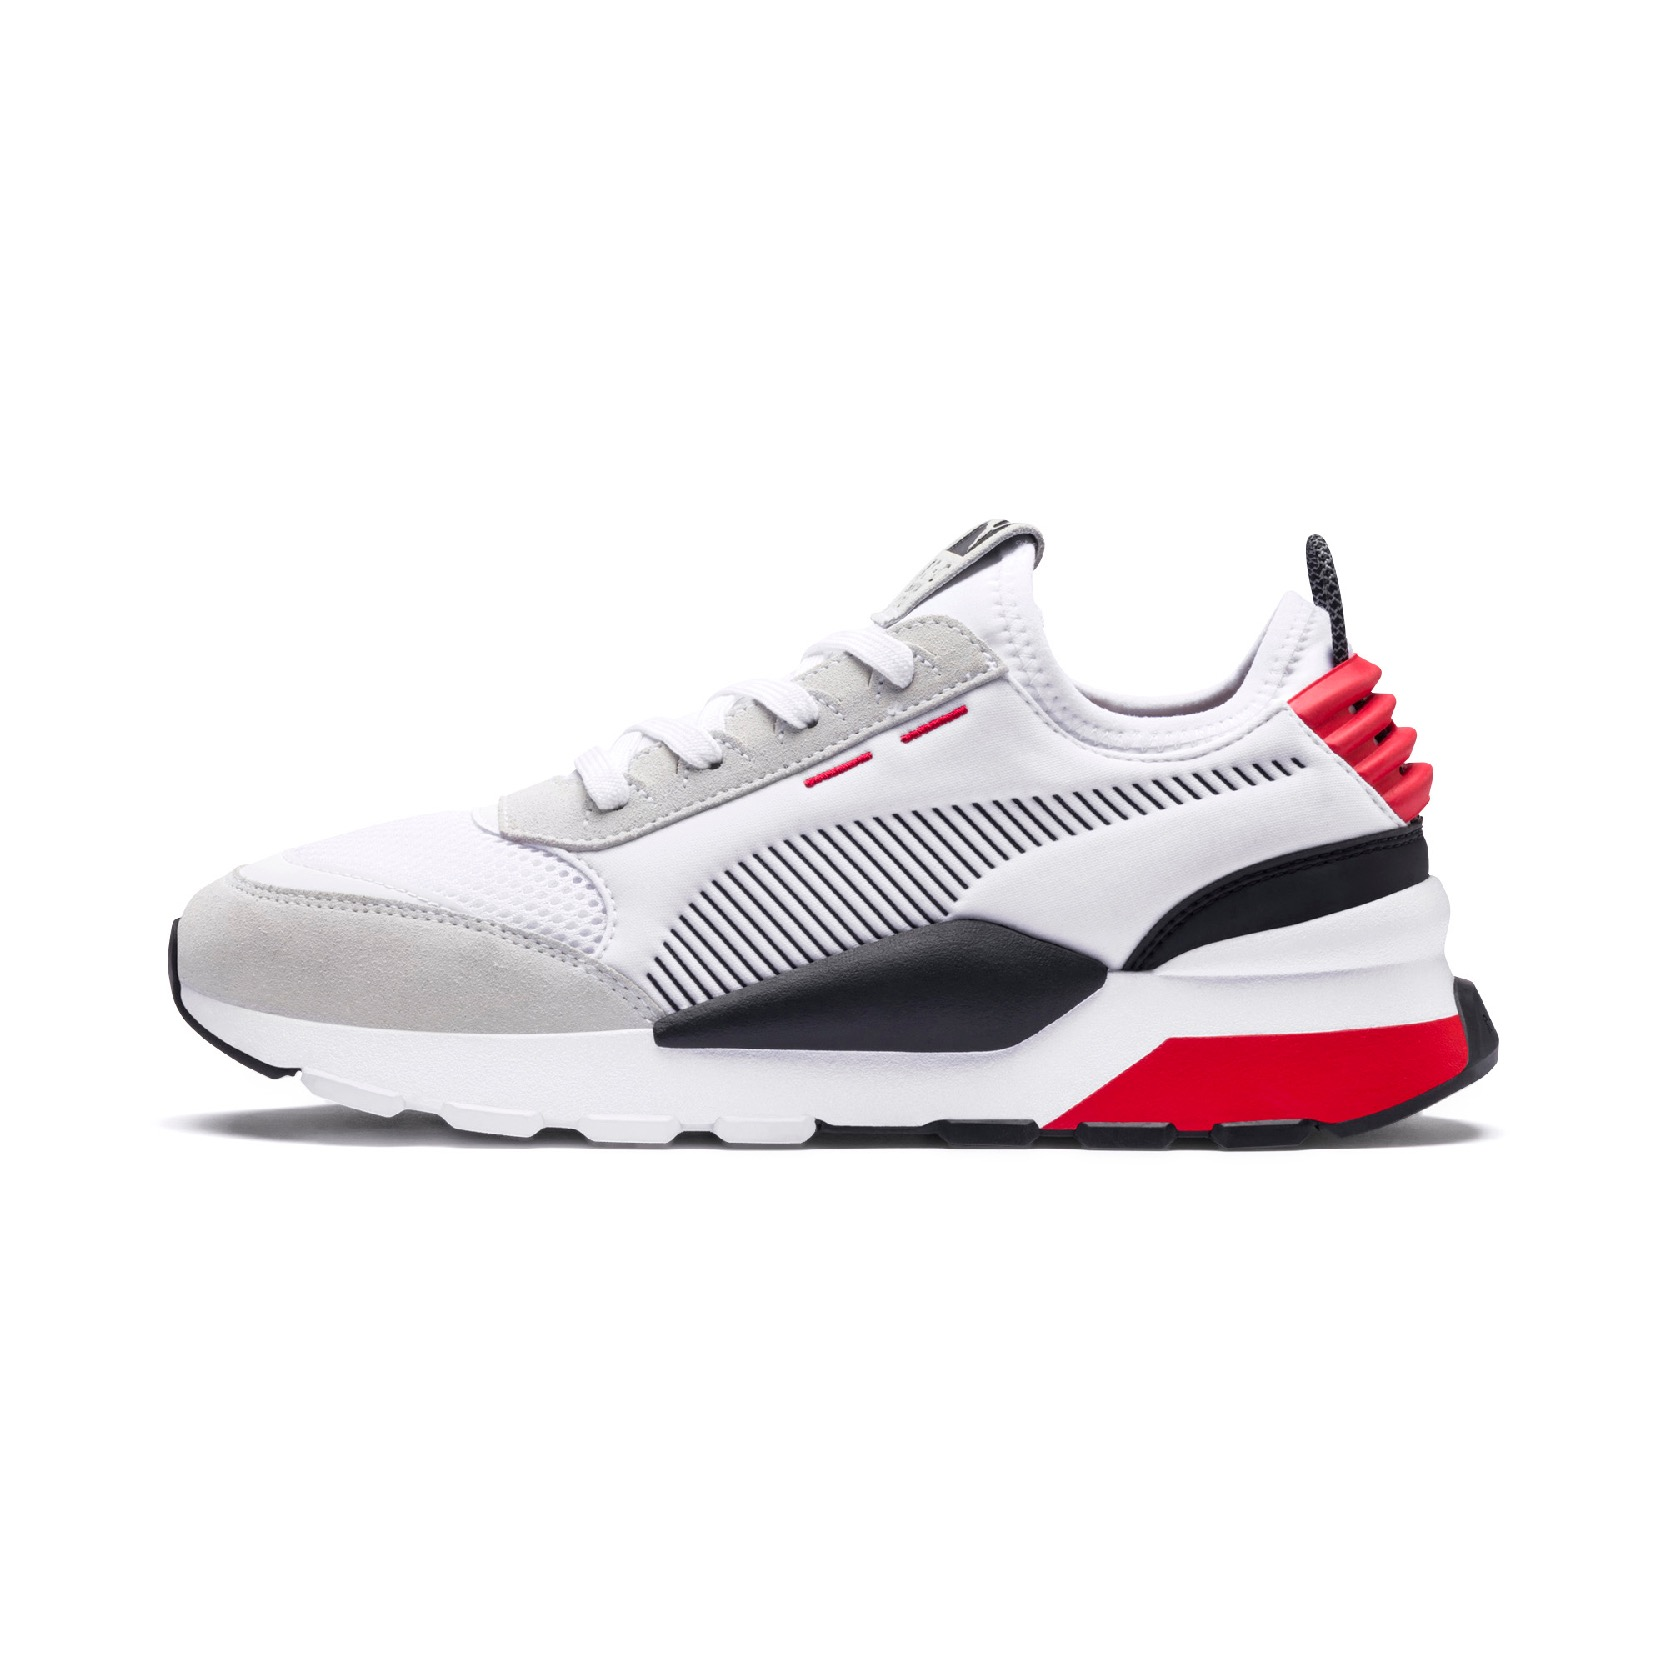 RS-0 Winter INJ TOYS Puma White-High Risk Red – 44